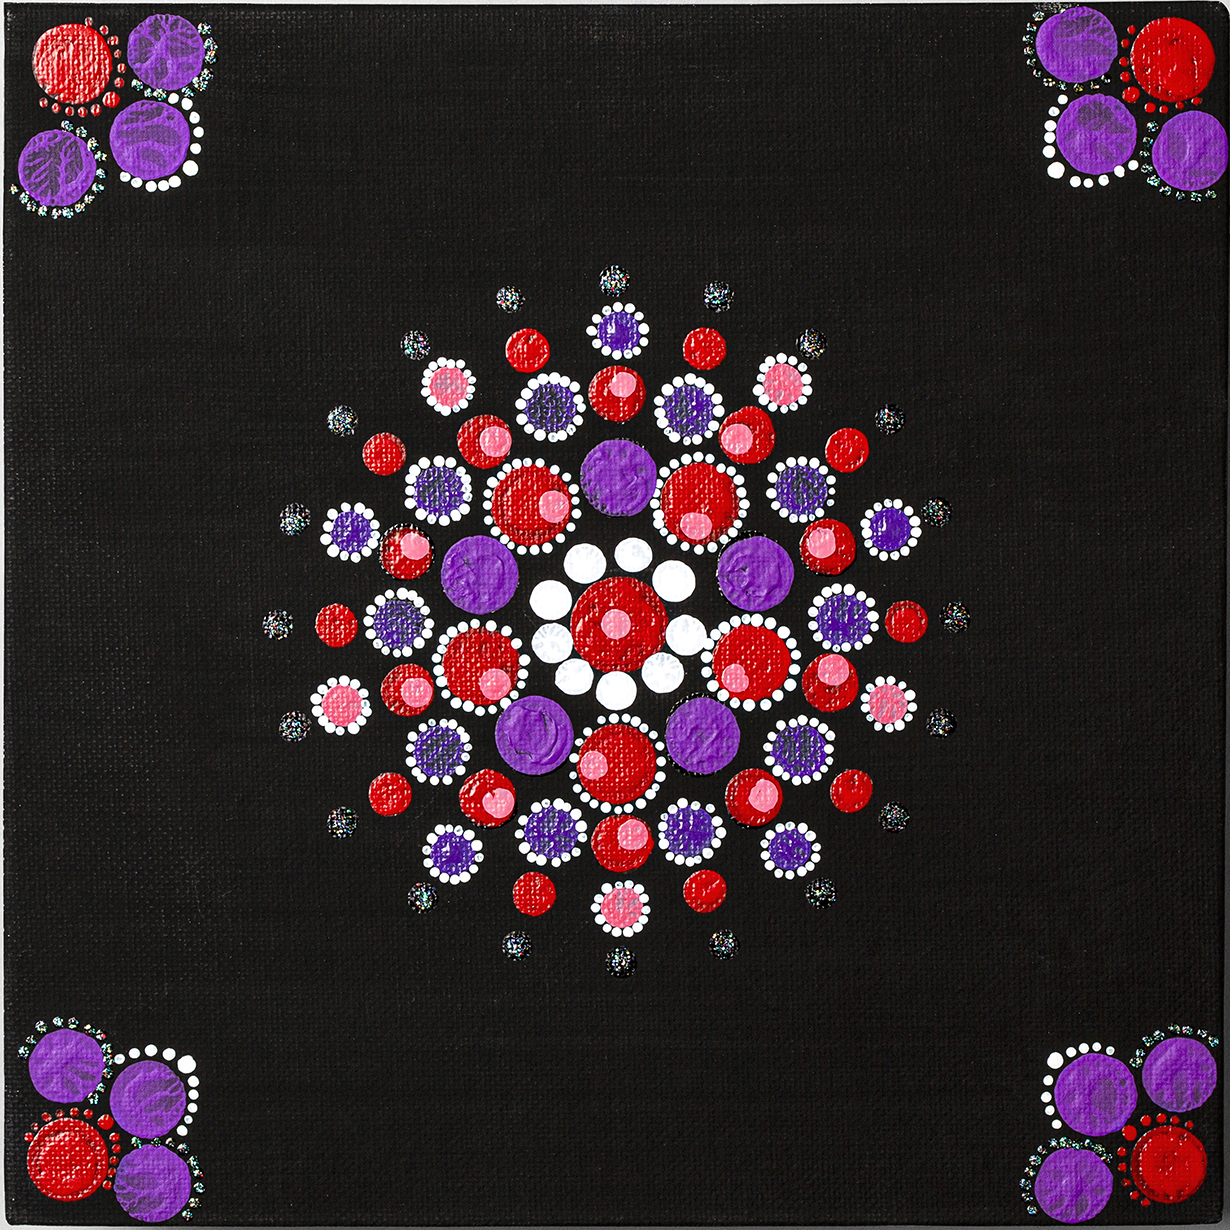 RIONDA RIDLEY, UNTITLED: Red blood cells in the mix of beautiful purple dots, purple represents my adopted mother who has MDS.